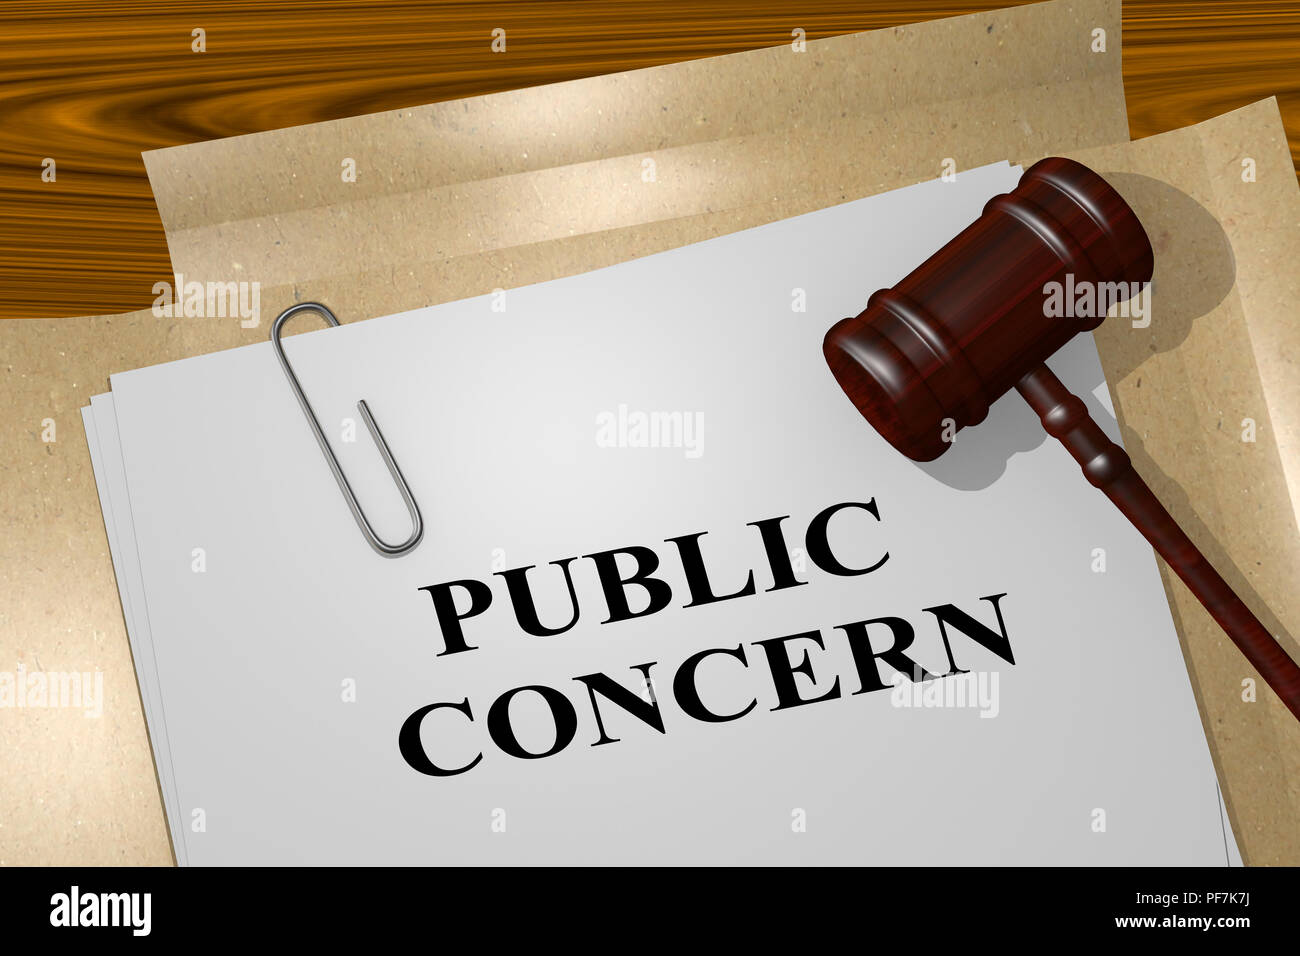 3D illustration of PUBLIC CONCERN title on legal document - Stock Image